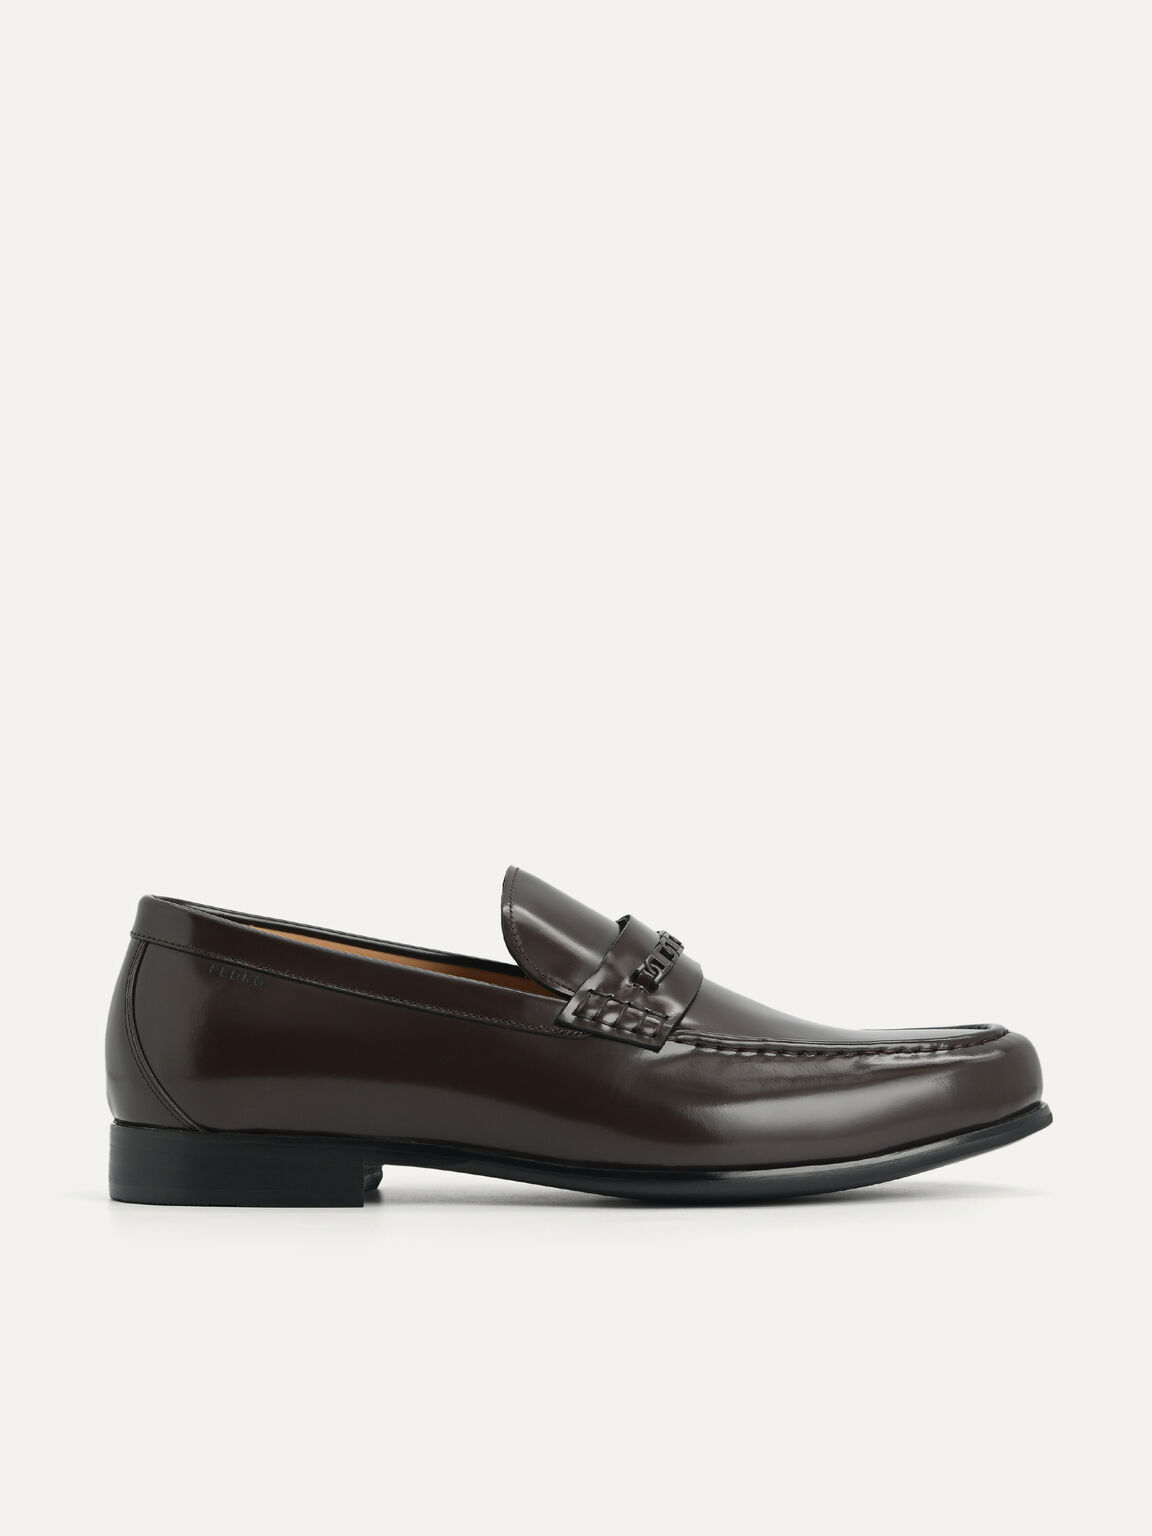 Icon Leather Penny Loafers, Dark Brown, hi-res